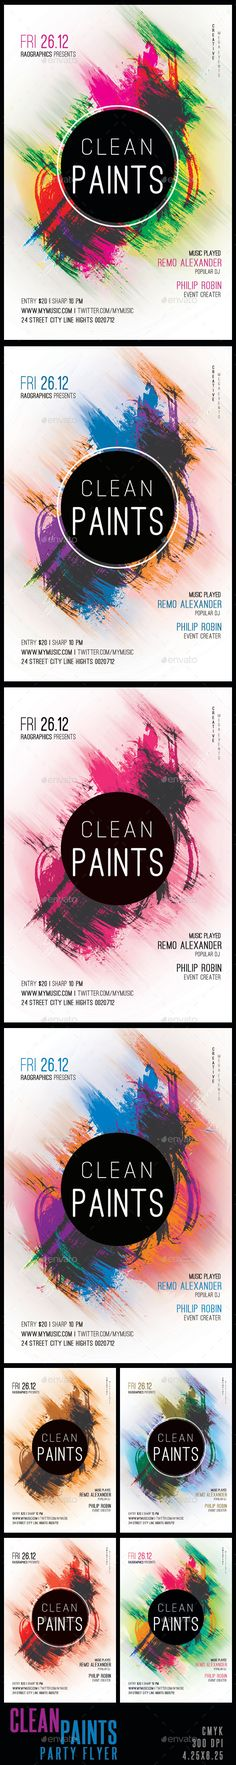 Clean Paints Party Flyer Template PSD | Buy and Download: http://graphicriver.net/item/clean-paints-party-flyer-template/9177679?WT.ac=category_thumb&WT.z_author=raographics&ref=ksioks